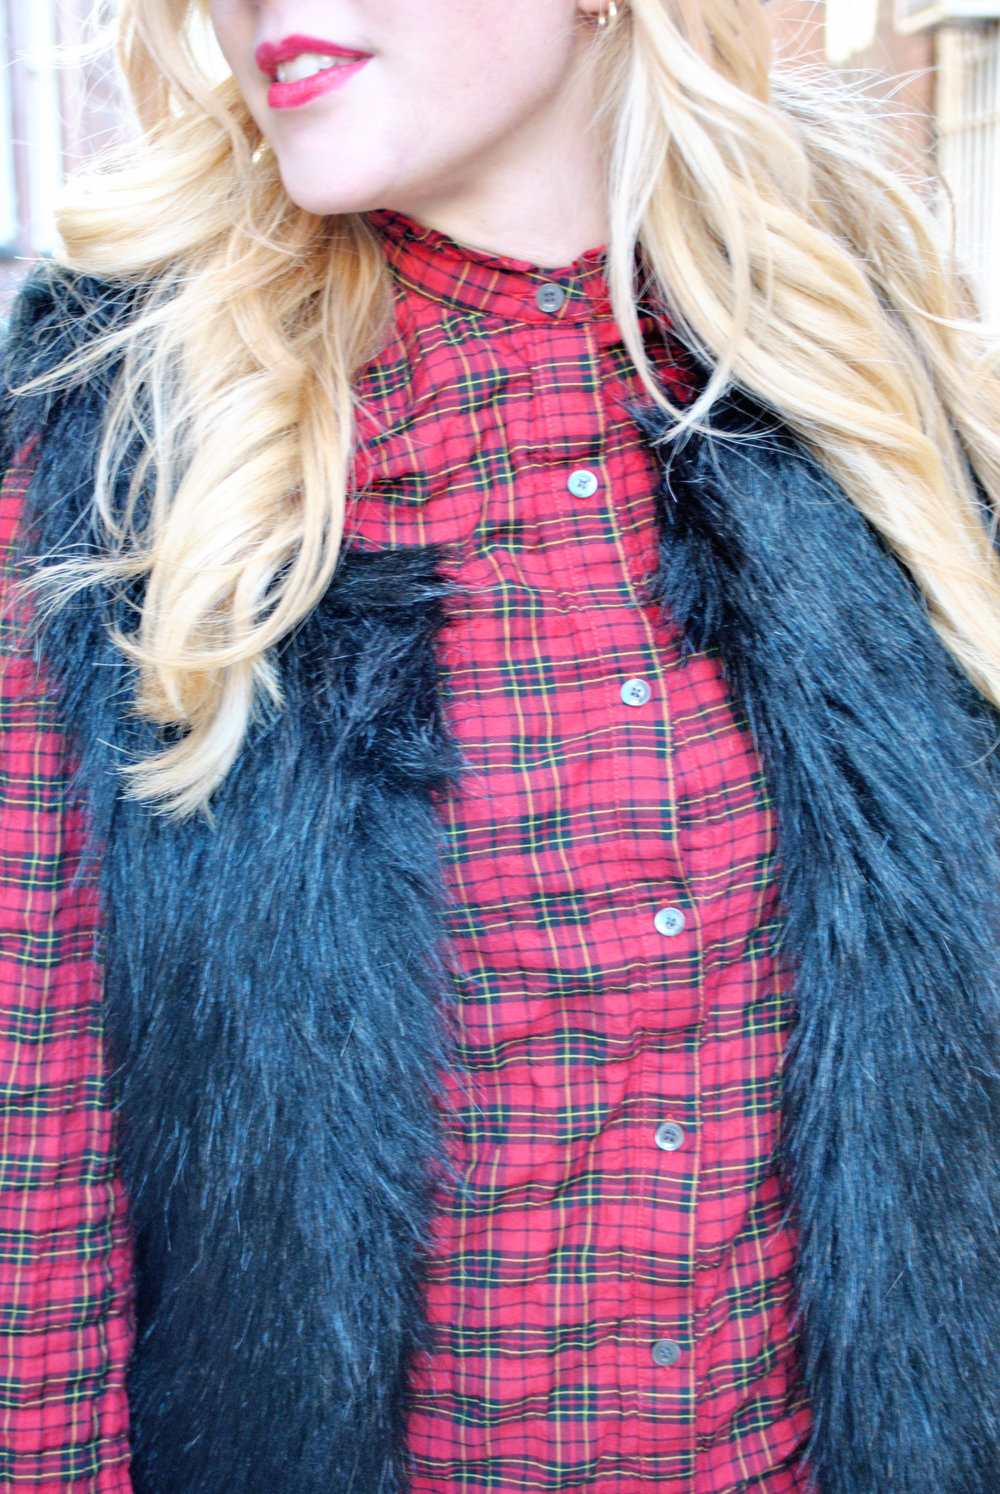 thoughtfulwish | j.mclaughlin // red plaid // salem // fall outfit // plaid outfit // fur vest // boots // preppy // meredith wish